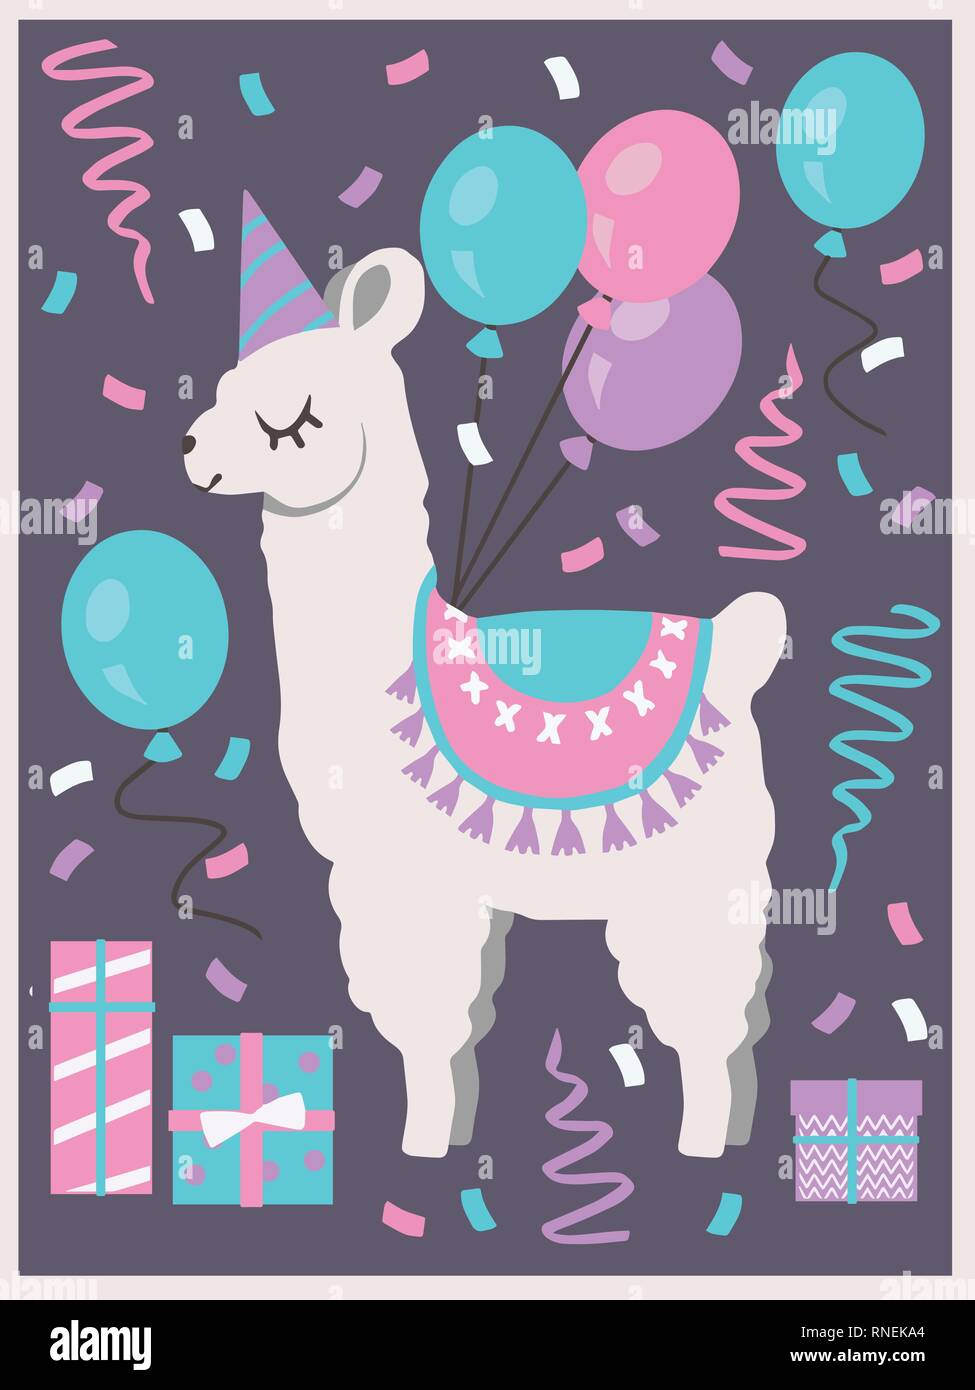 Cute White Llama Or Alpaca With Party Hat Gift Boxes Balloons And Confetti Birthday Greeting Card Vector Art Motive